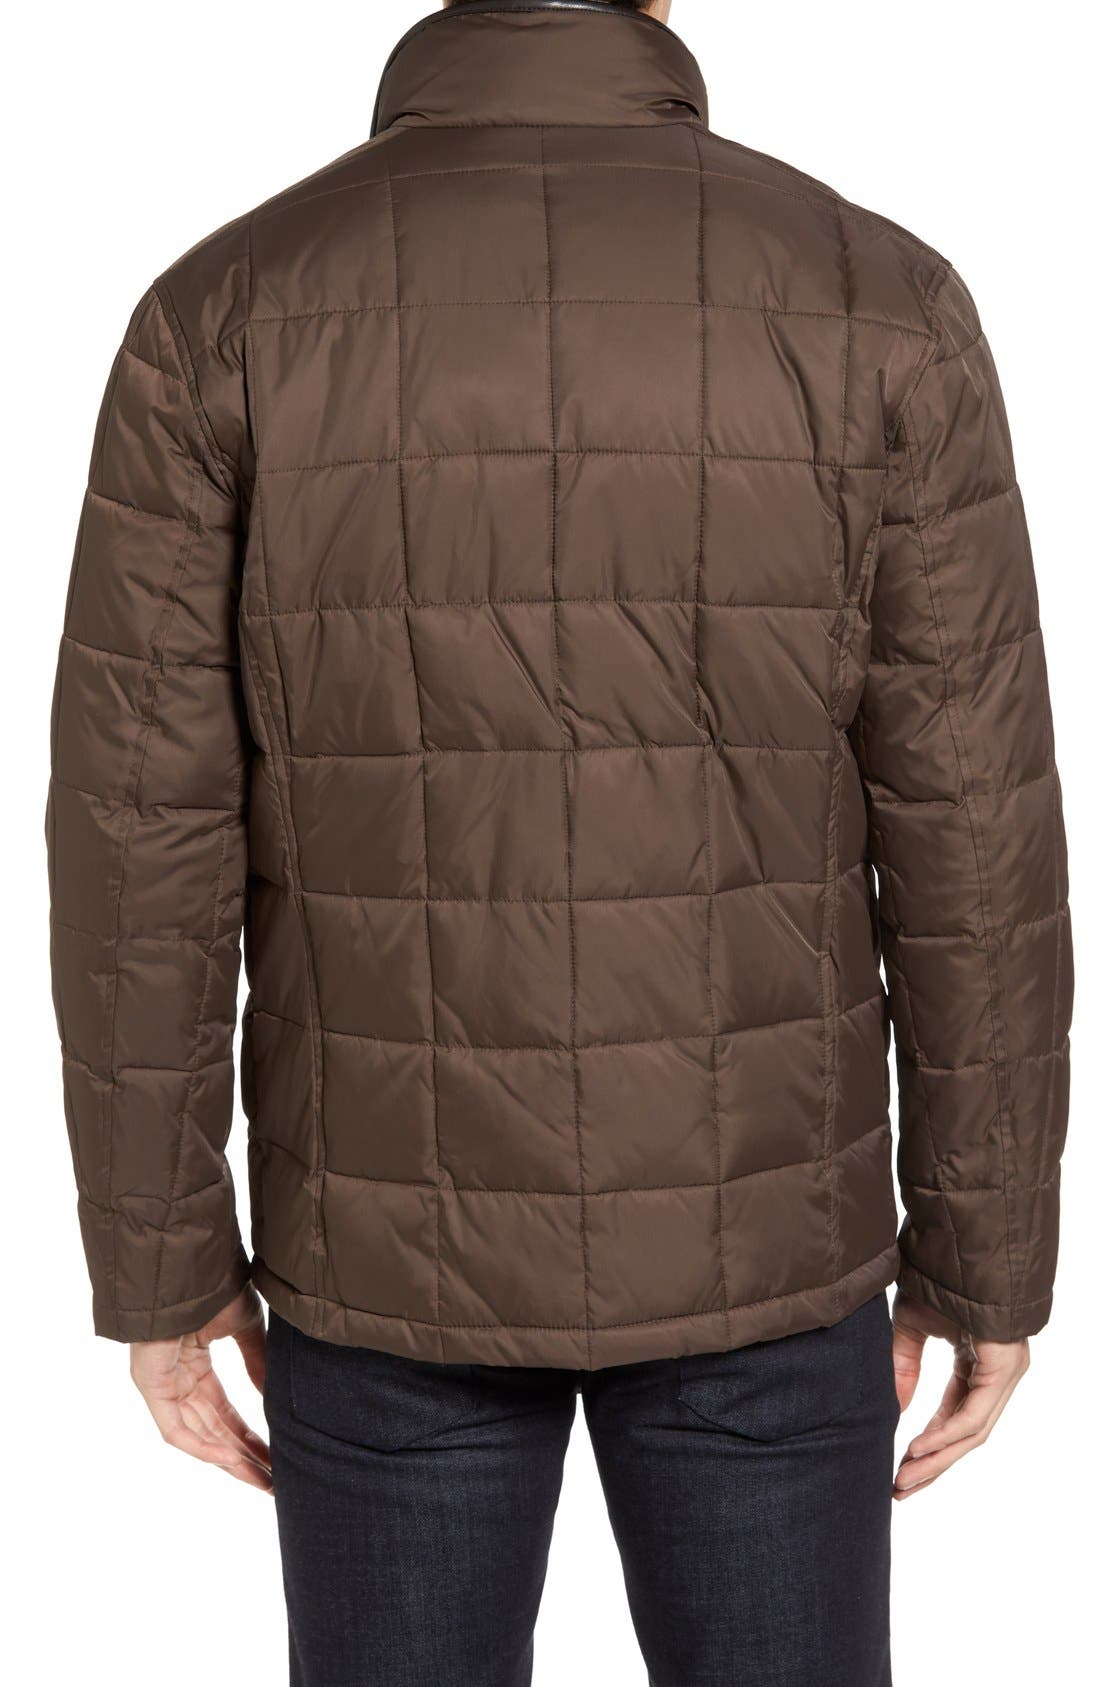 Box Quilted Jacket,                             Alternate thumbnail 2, color,                             Wren